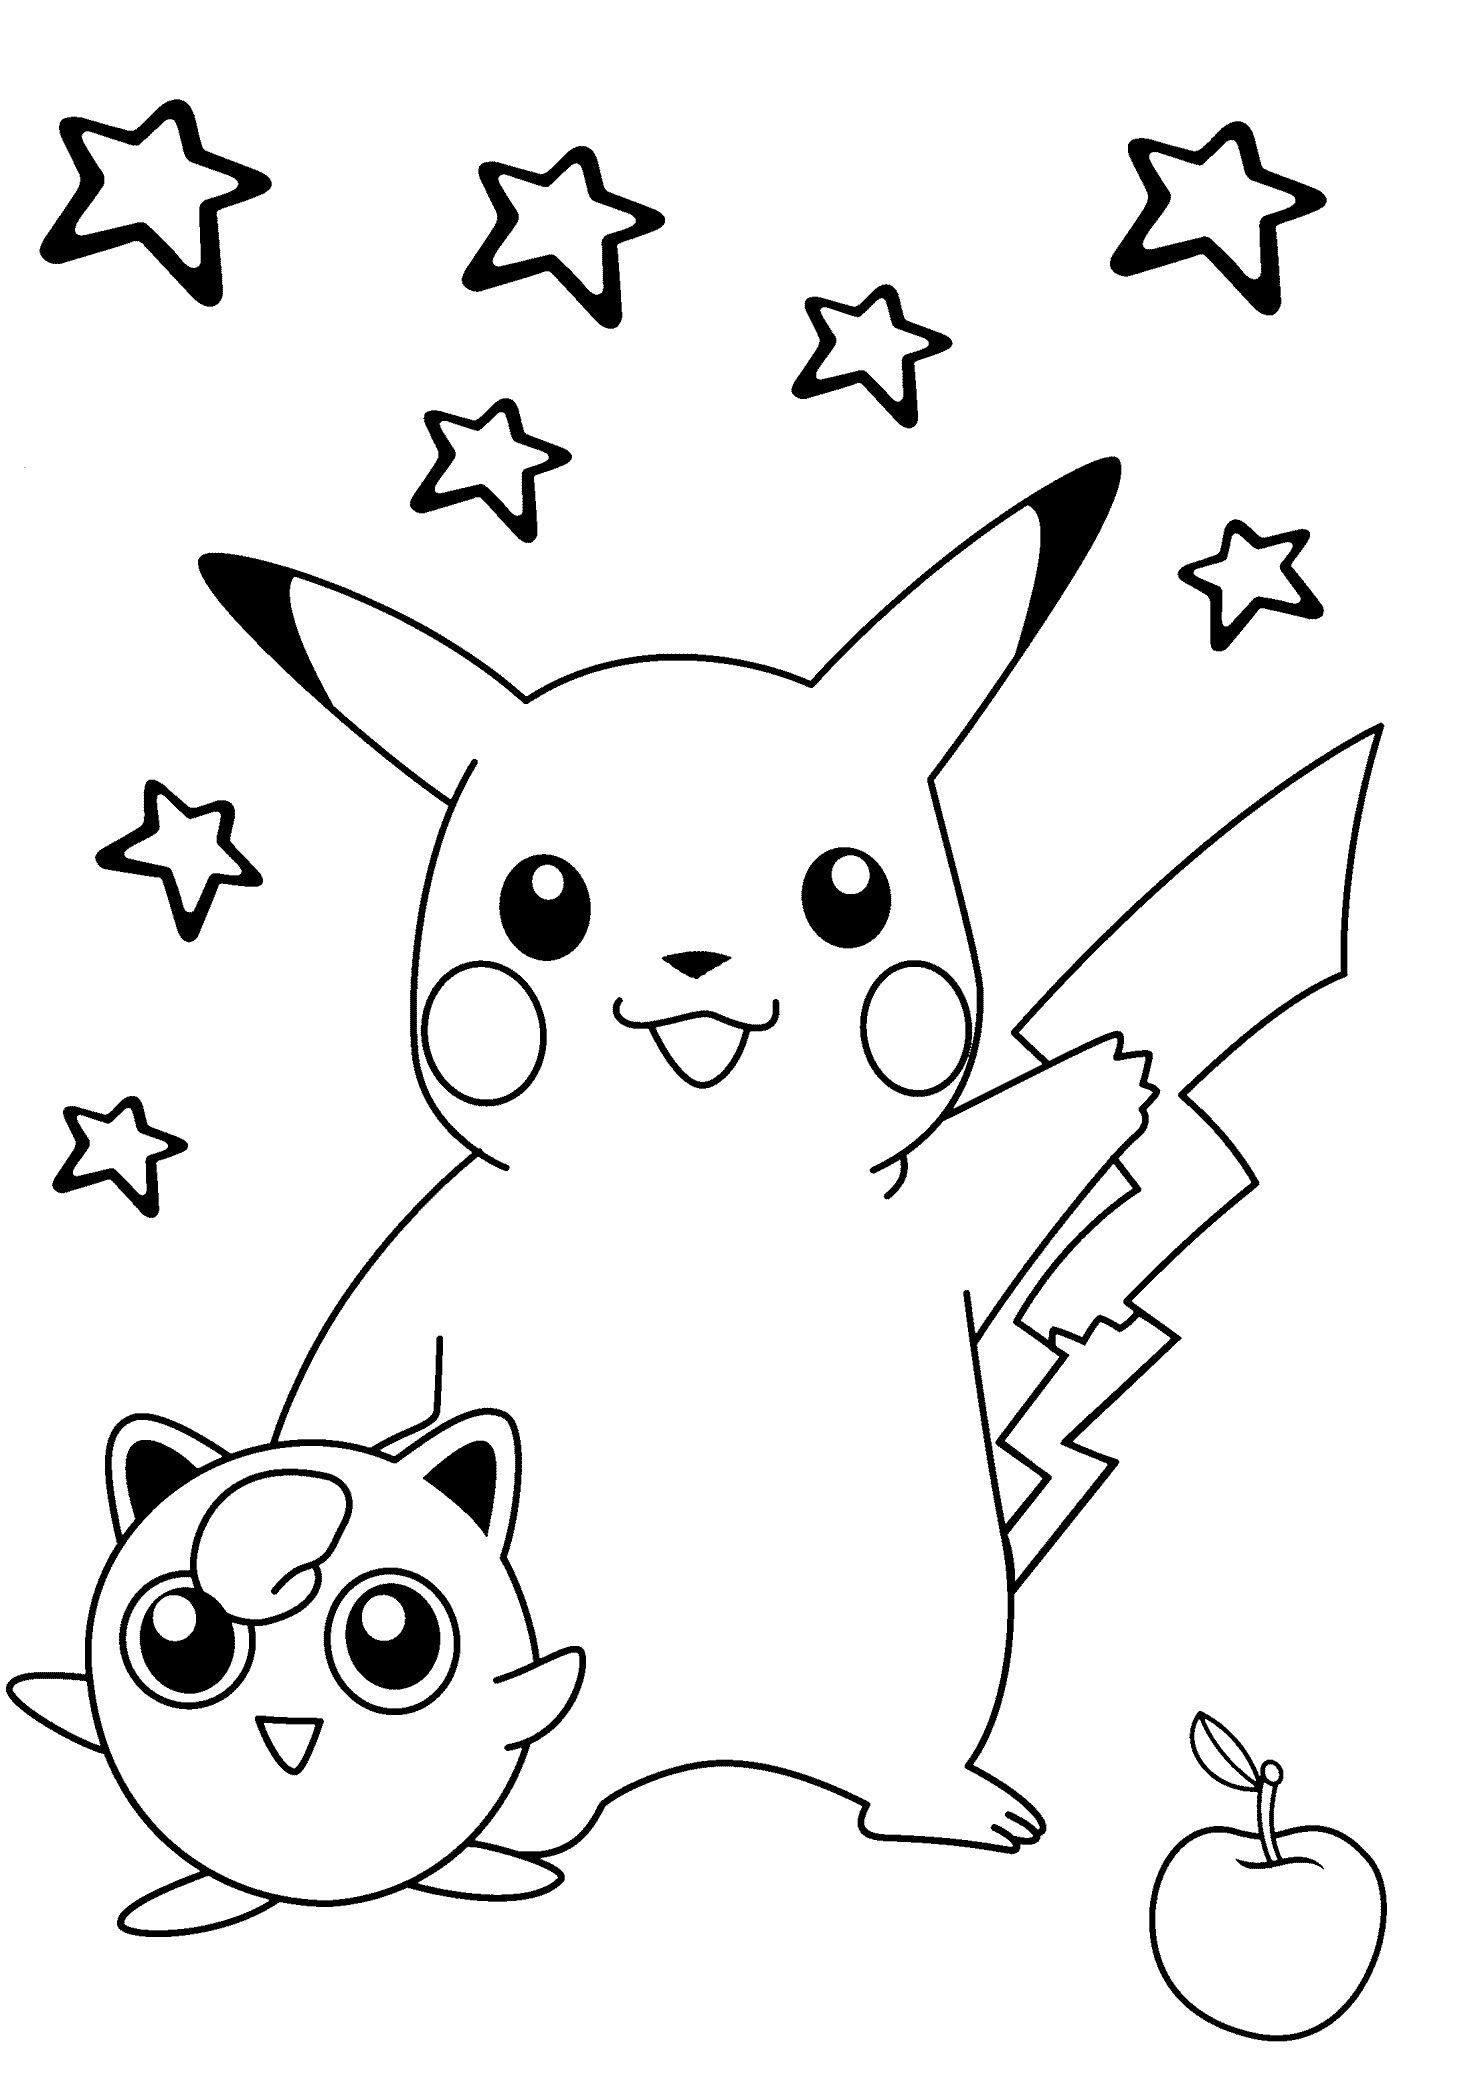 Free Pokemon Coloring Book Pdf Pikachu Coloring Page Pokemon